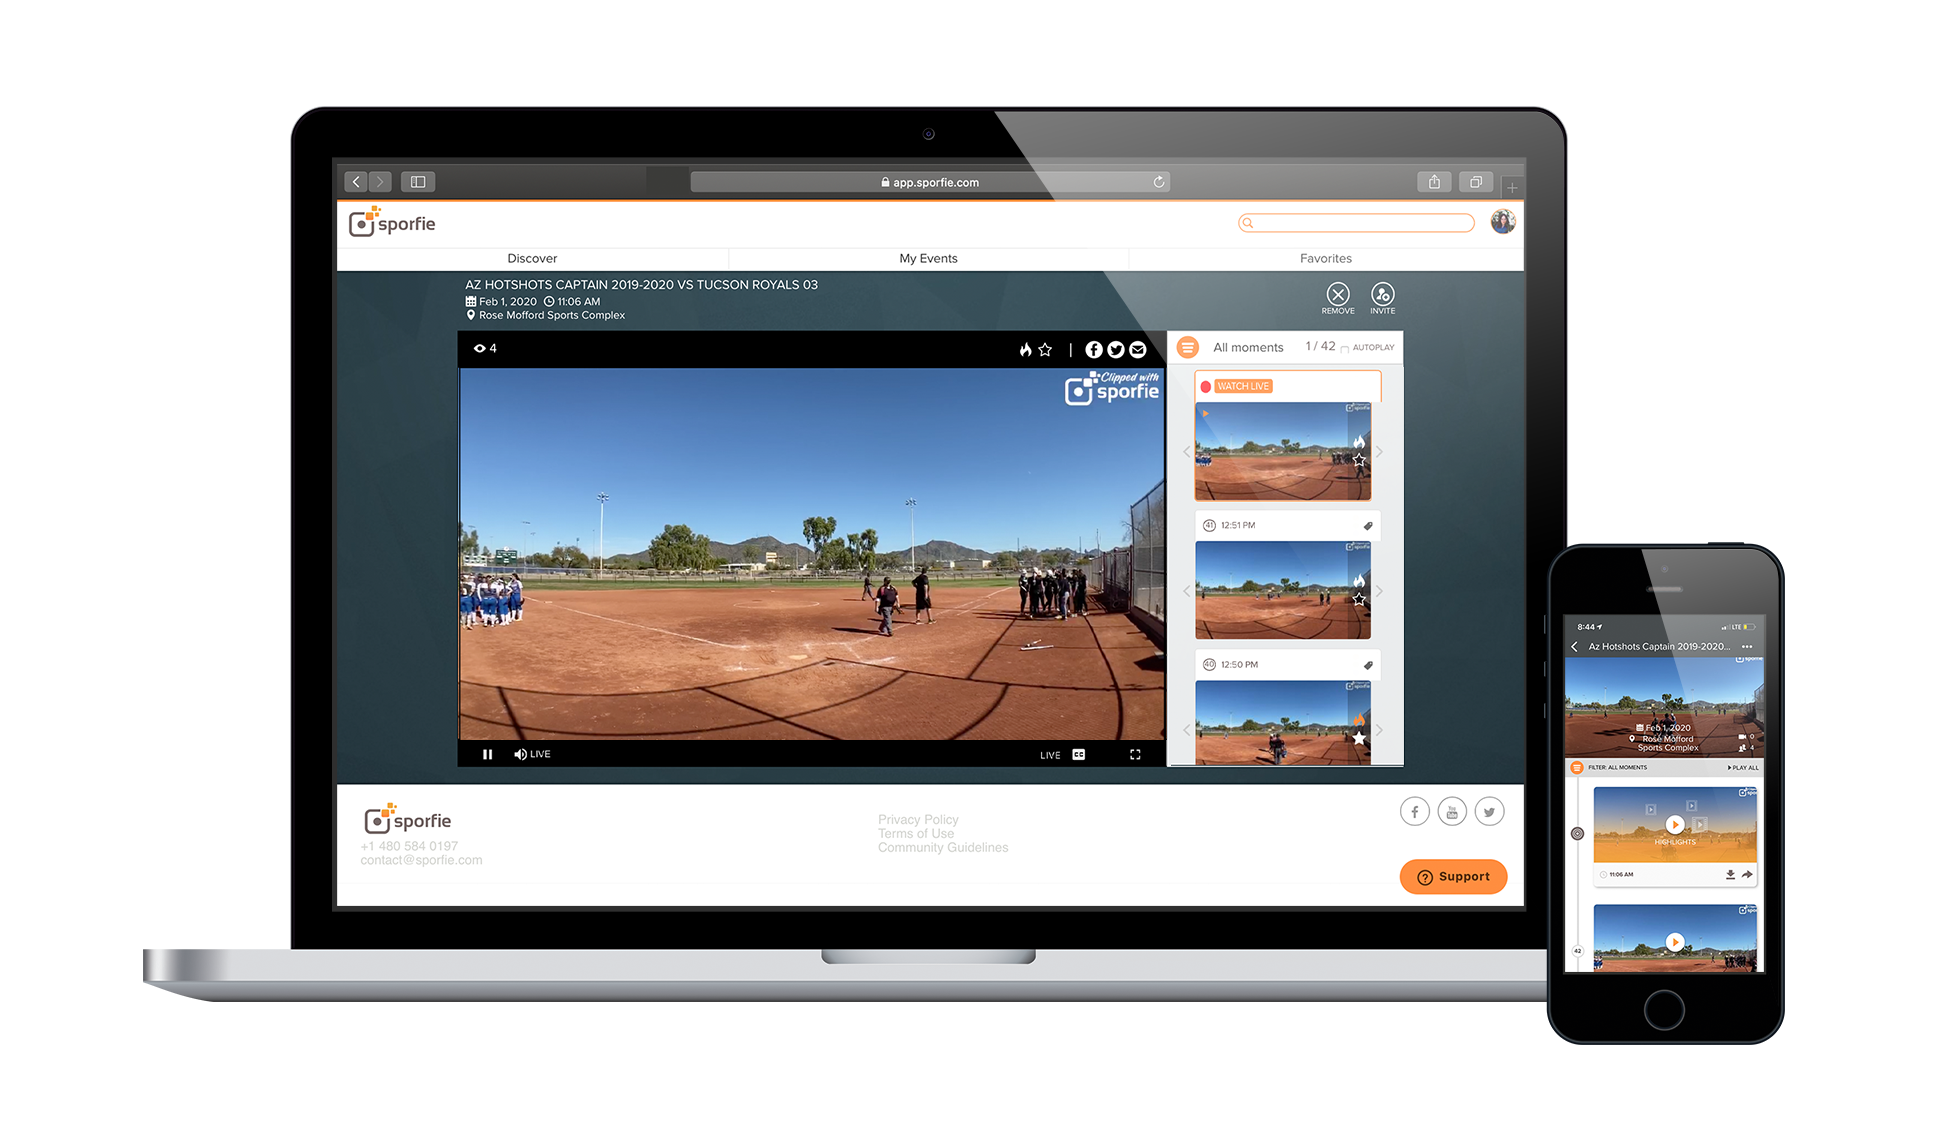 Sporfie live streaming on mobile and desktop